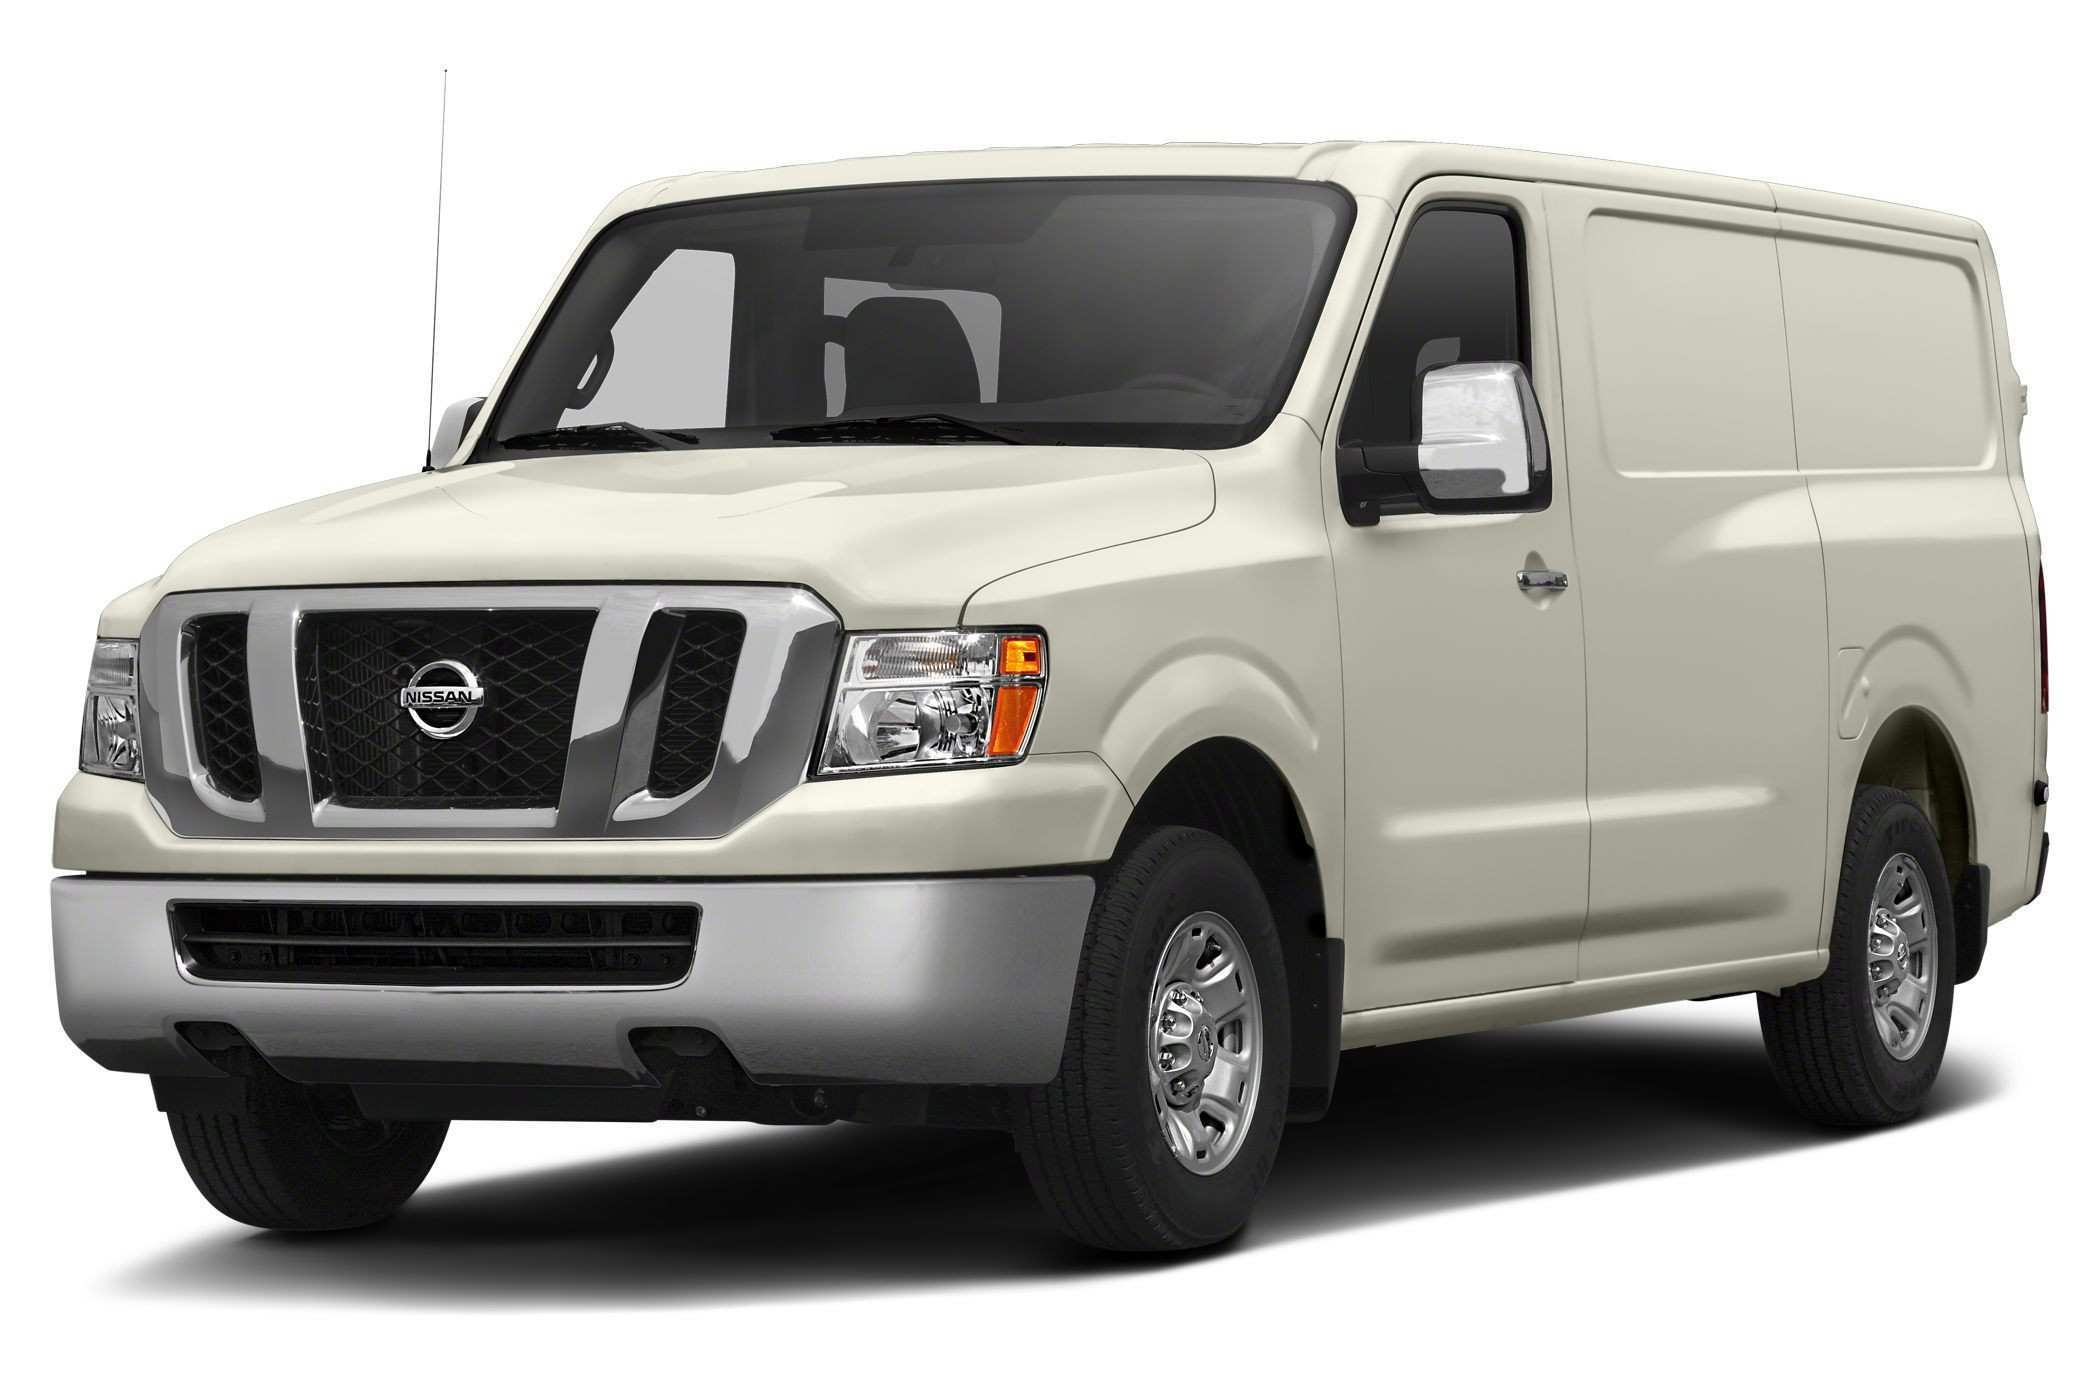 64 All New Nissan Nv 2020 New Concept for Nissan Nv 2020